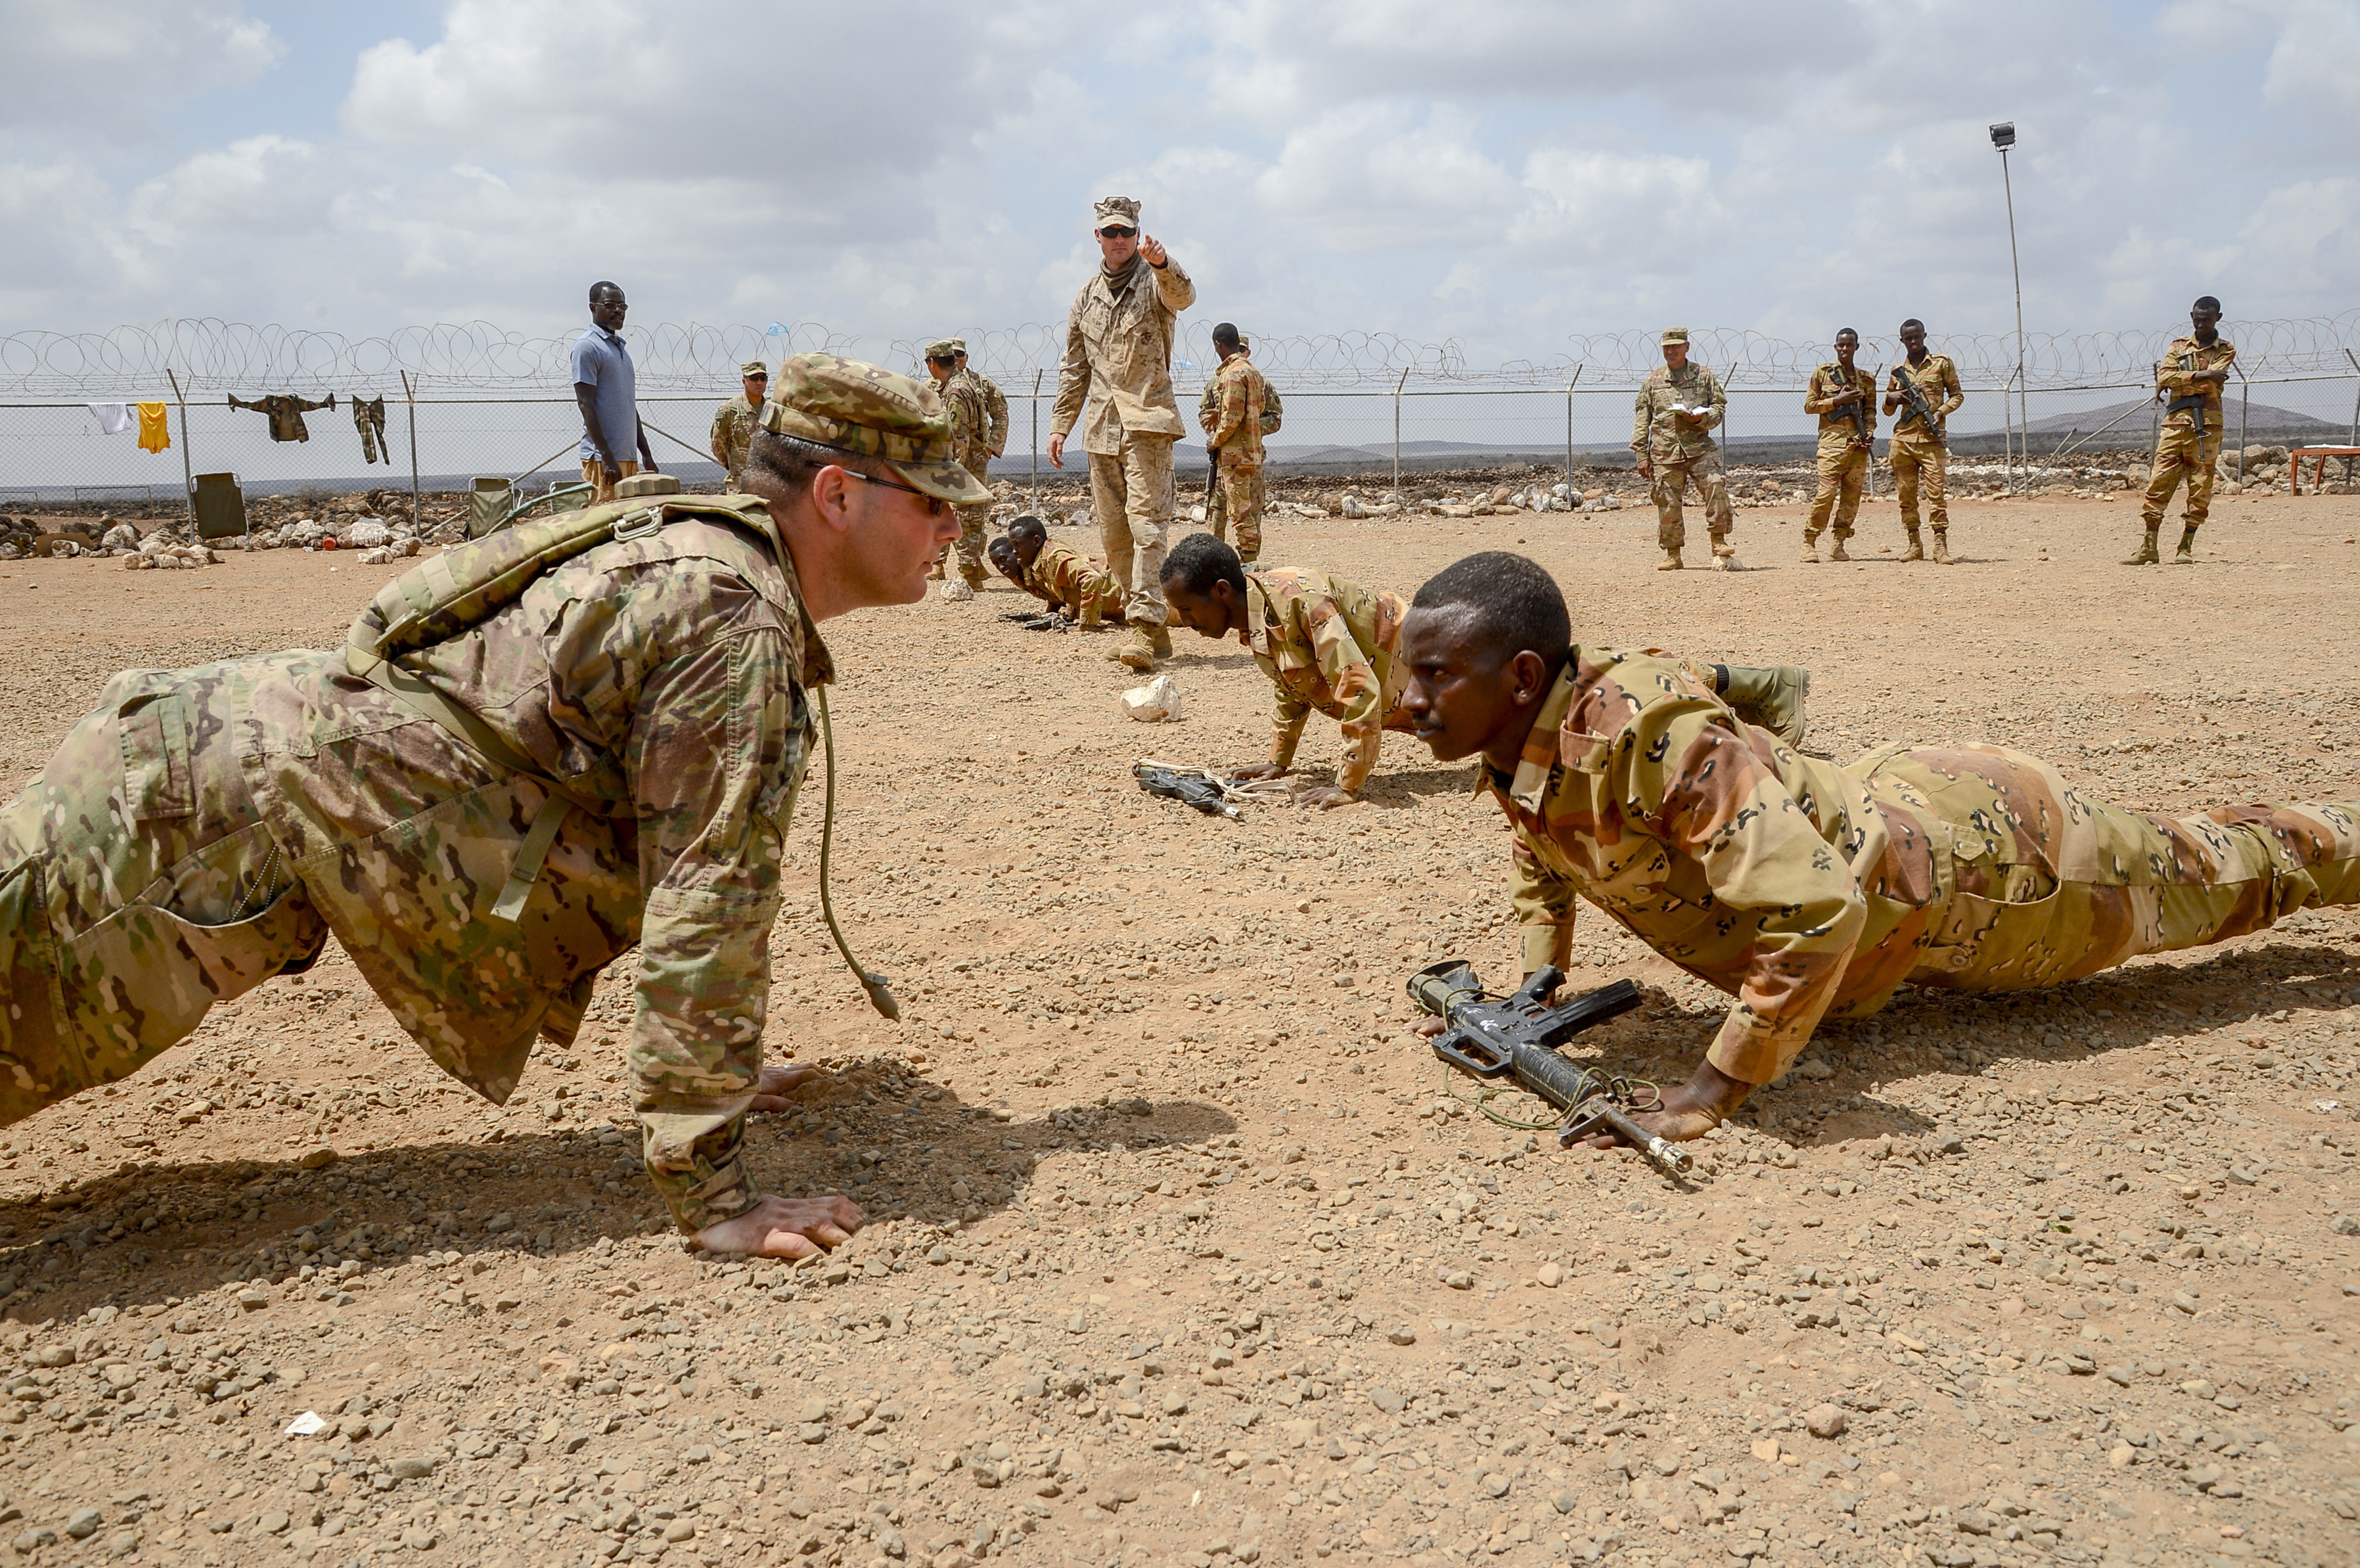 U.S. Army Sergeant Vincent Merriman, Alpha Company, 3rd Battalion, 141st Infantry Regiment, Texas National Guard, demonstrates a proper pushup for a Djiboutian soldier at a training site outside Djibouti City, April 19, 2018. U.S. service members have been training the Djiboutian Army's Rapid Intervention Battalion, a newly formed crisis response unit. (U.S. Navy Photo by Mass Communication Specialist 2nd Class Timothy M. Ahearn)